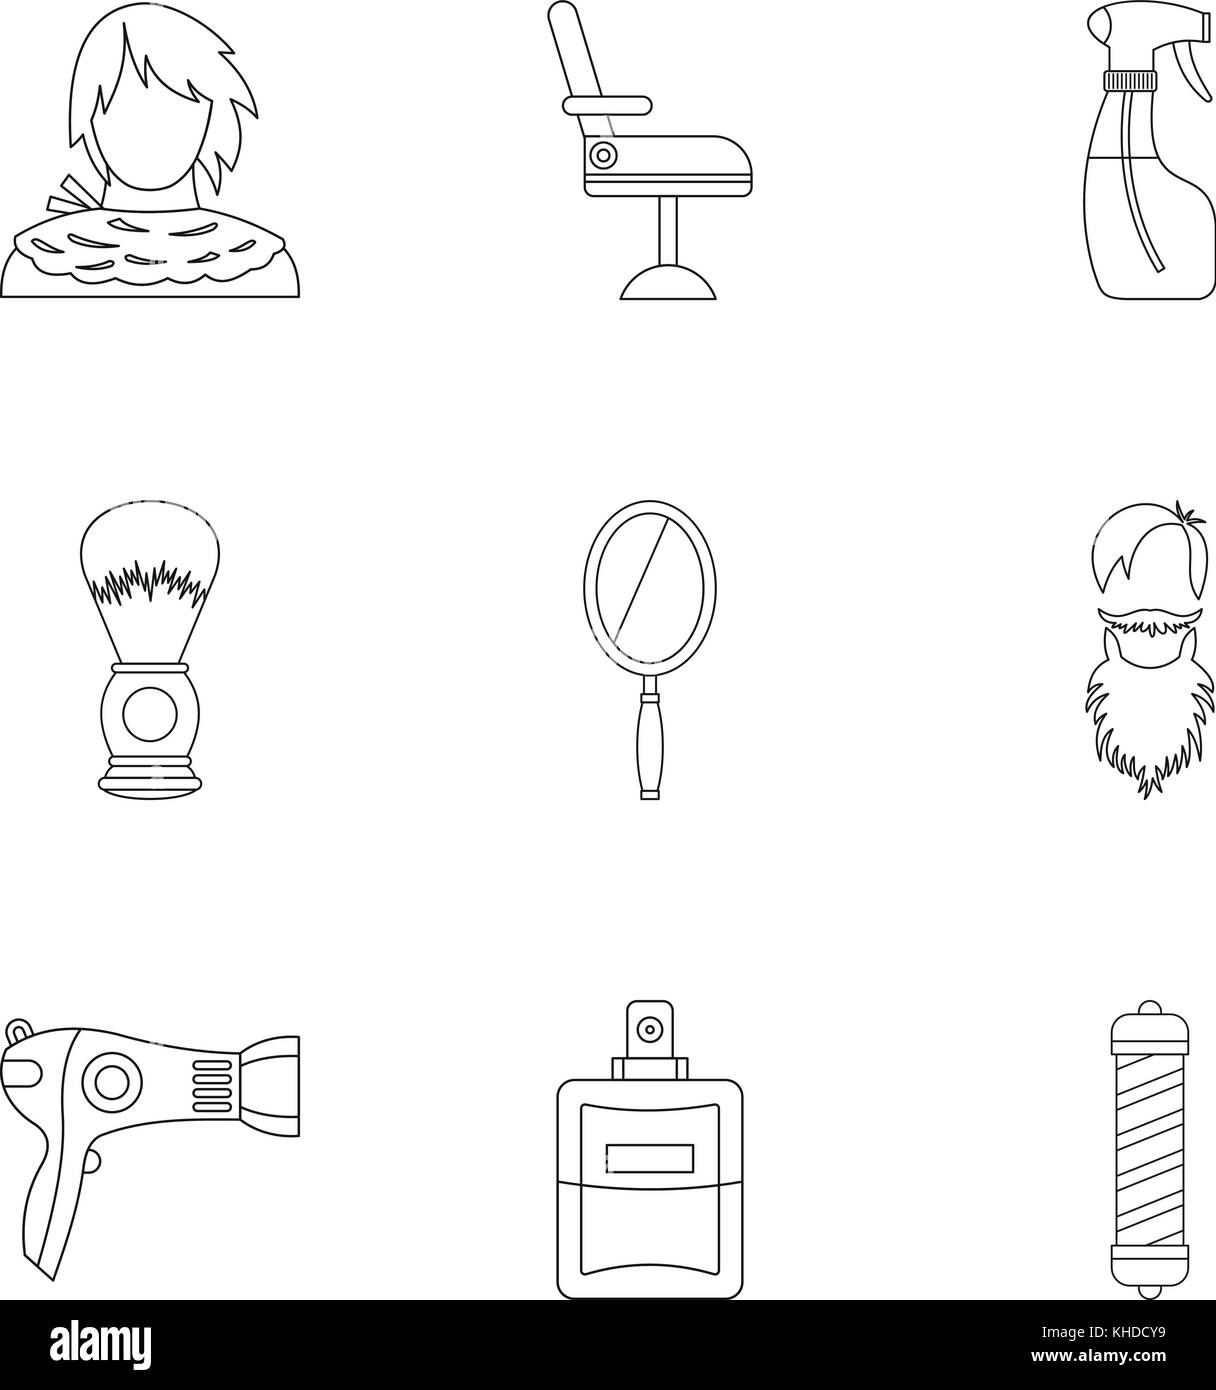 Hair cut icons set, outline style Stock Vector Art ... Hair Cutting Diagram on chemistry diagrams, tailoring diagrams, color diagrams, steam boiler diagrams, hvac systems diagrams, fashion diagrams, makeup diagrams, hair layering diagram, reflexology diagrams, hair diagram different layers, food diagrams, skin diagrams,